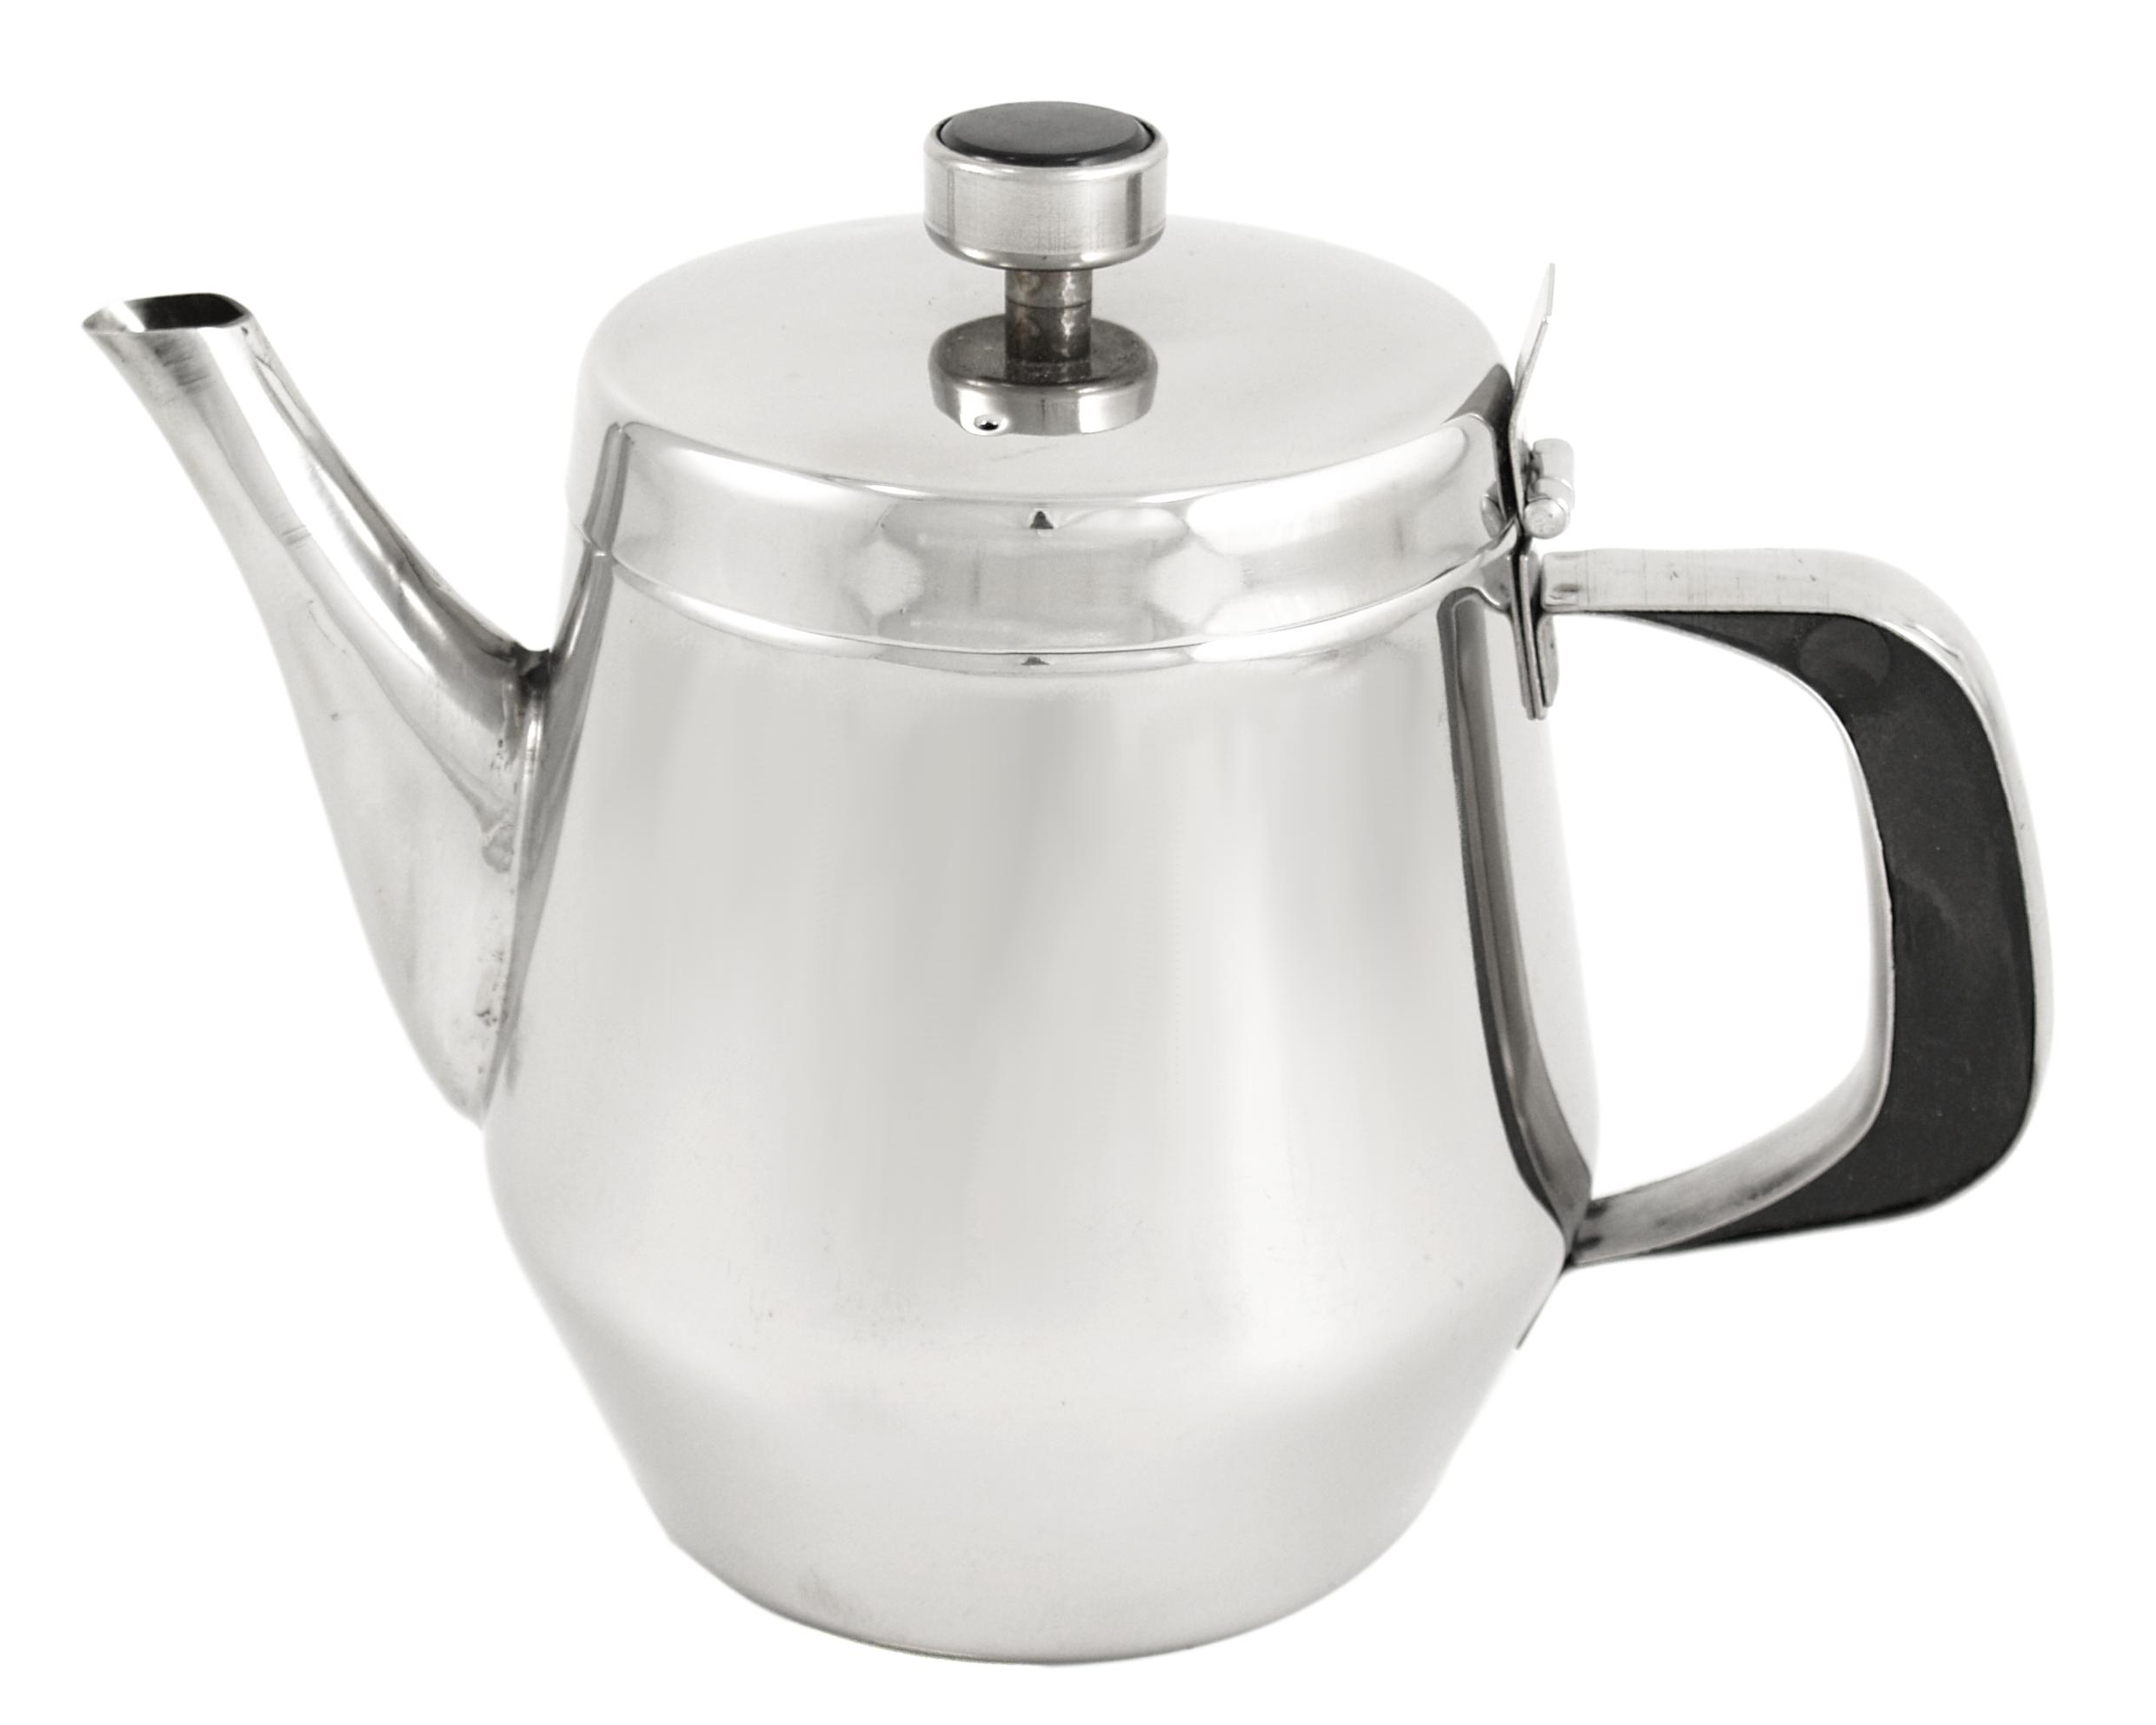 Asian Restaurant Style Stainless Steel 32 oz Teapot